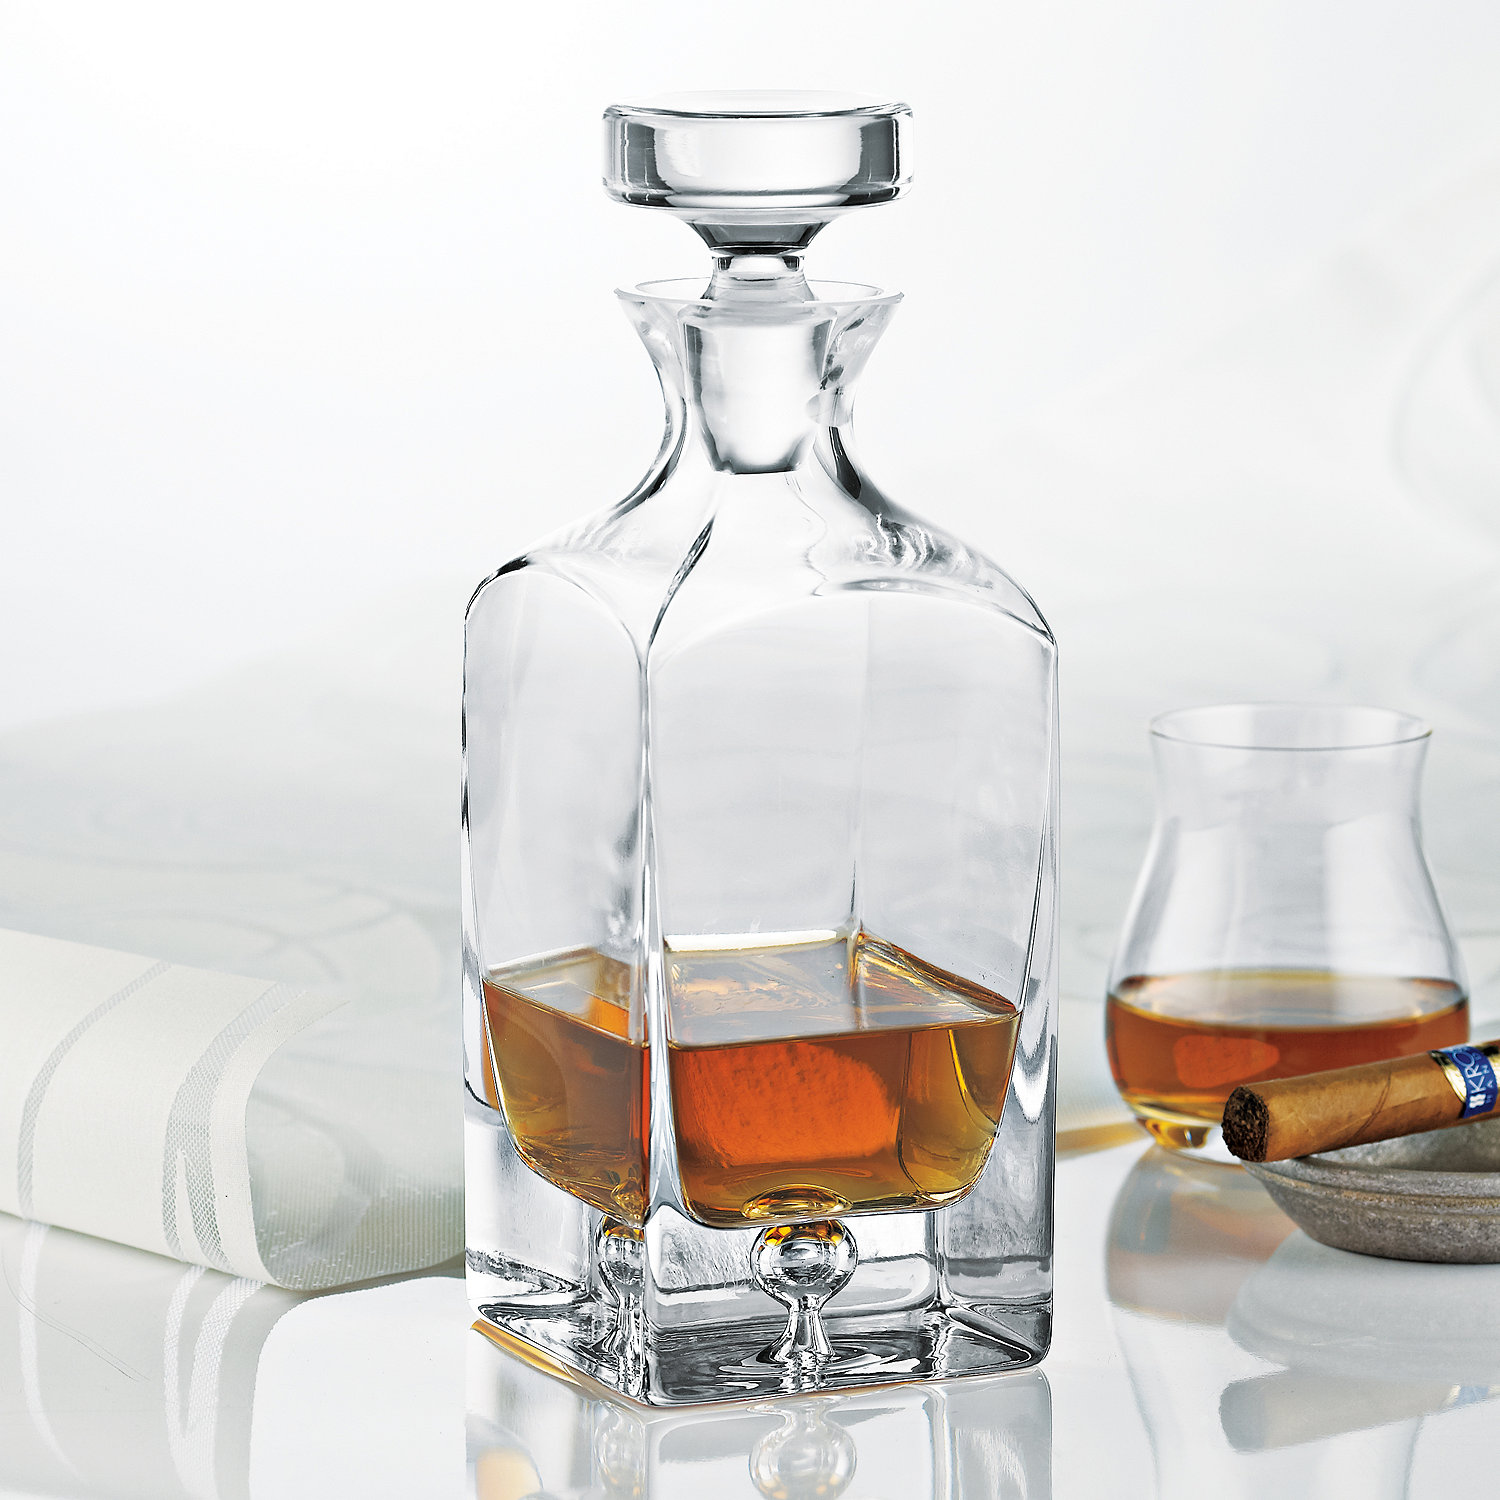 modern decanters modern decanters  modern decanters - modern decanters